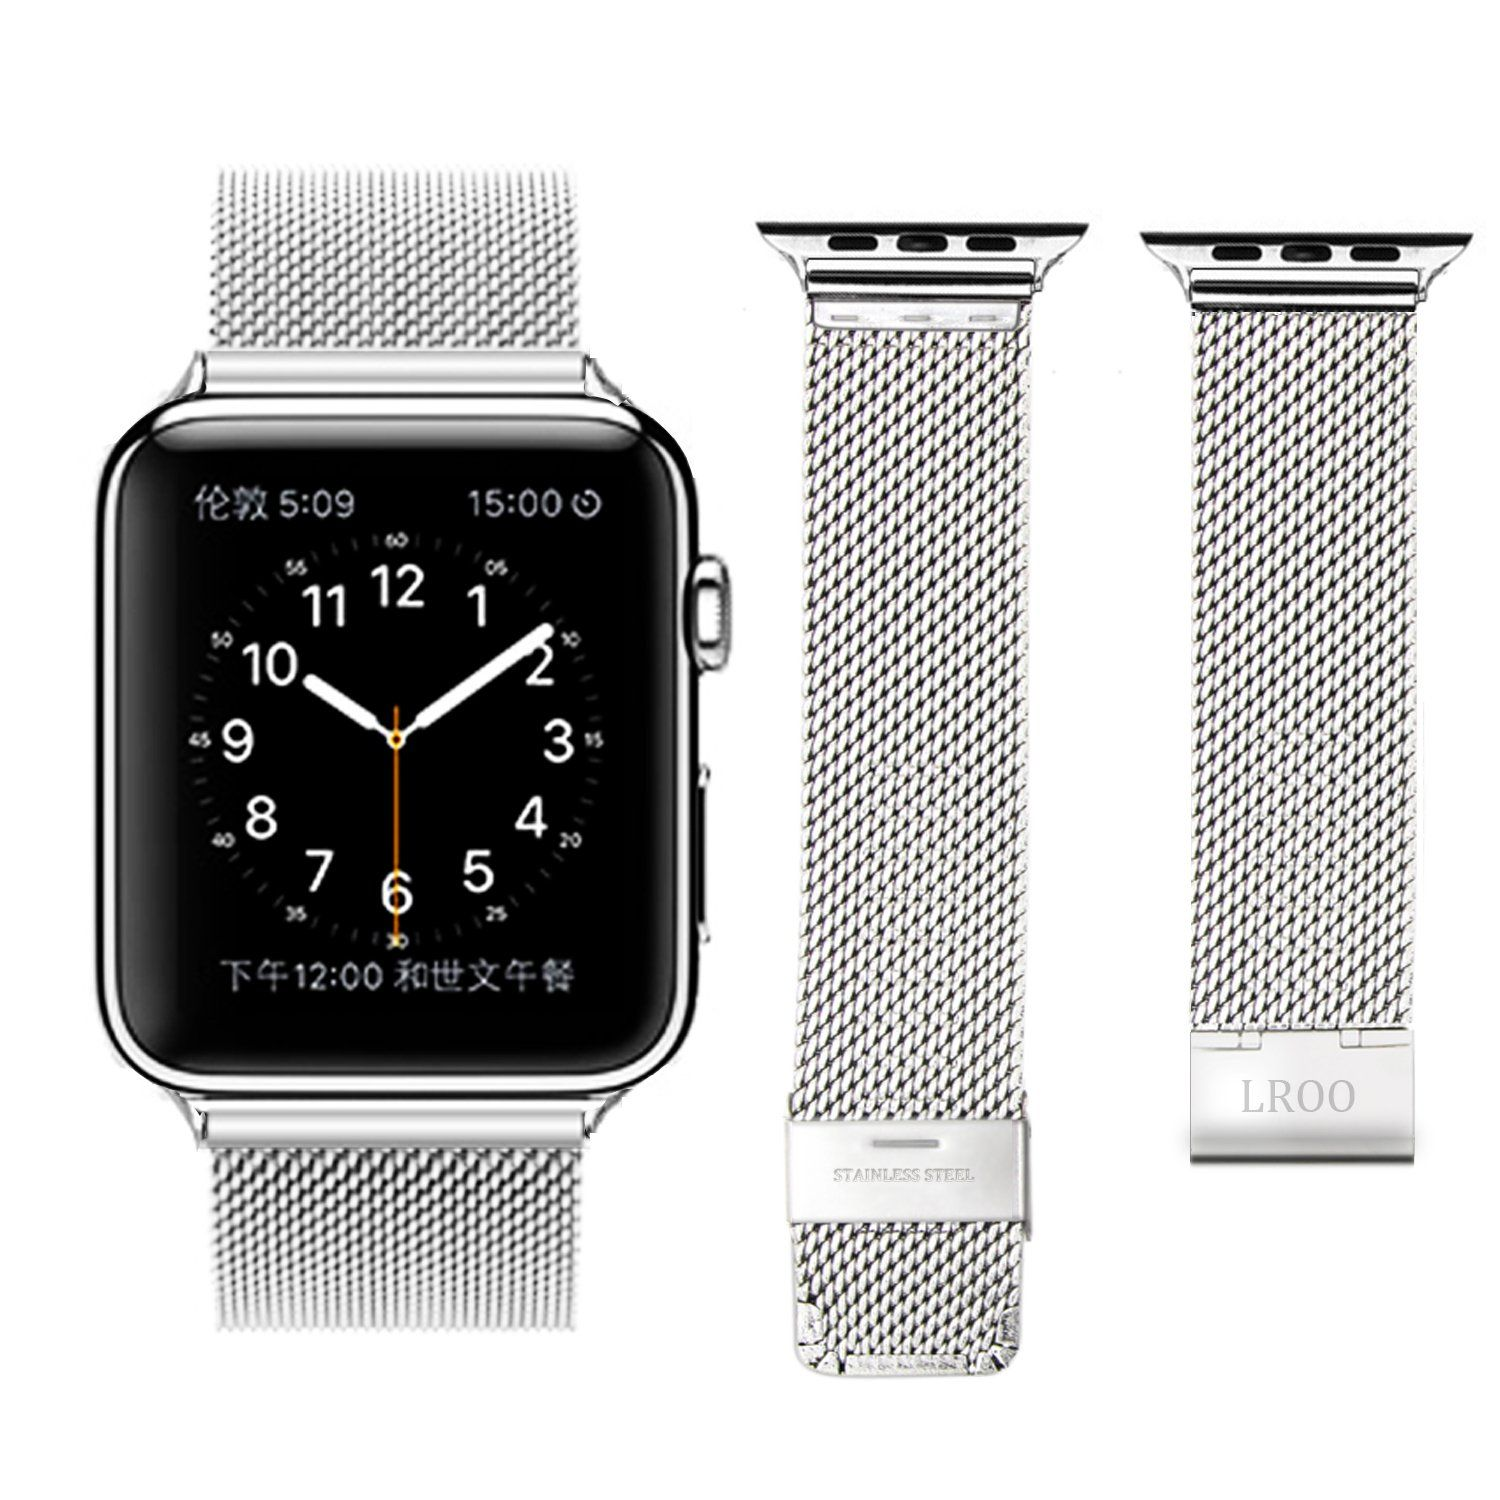 Amazon Com Apple Watch Band Lroo Stainless Steel Mesh Replacement Strap Wrist Band With Metal Clasp For Apple Watch Sport Edition Silver Big Mesh 42mm